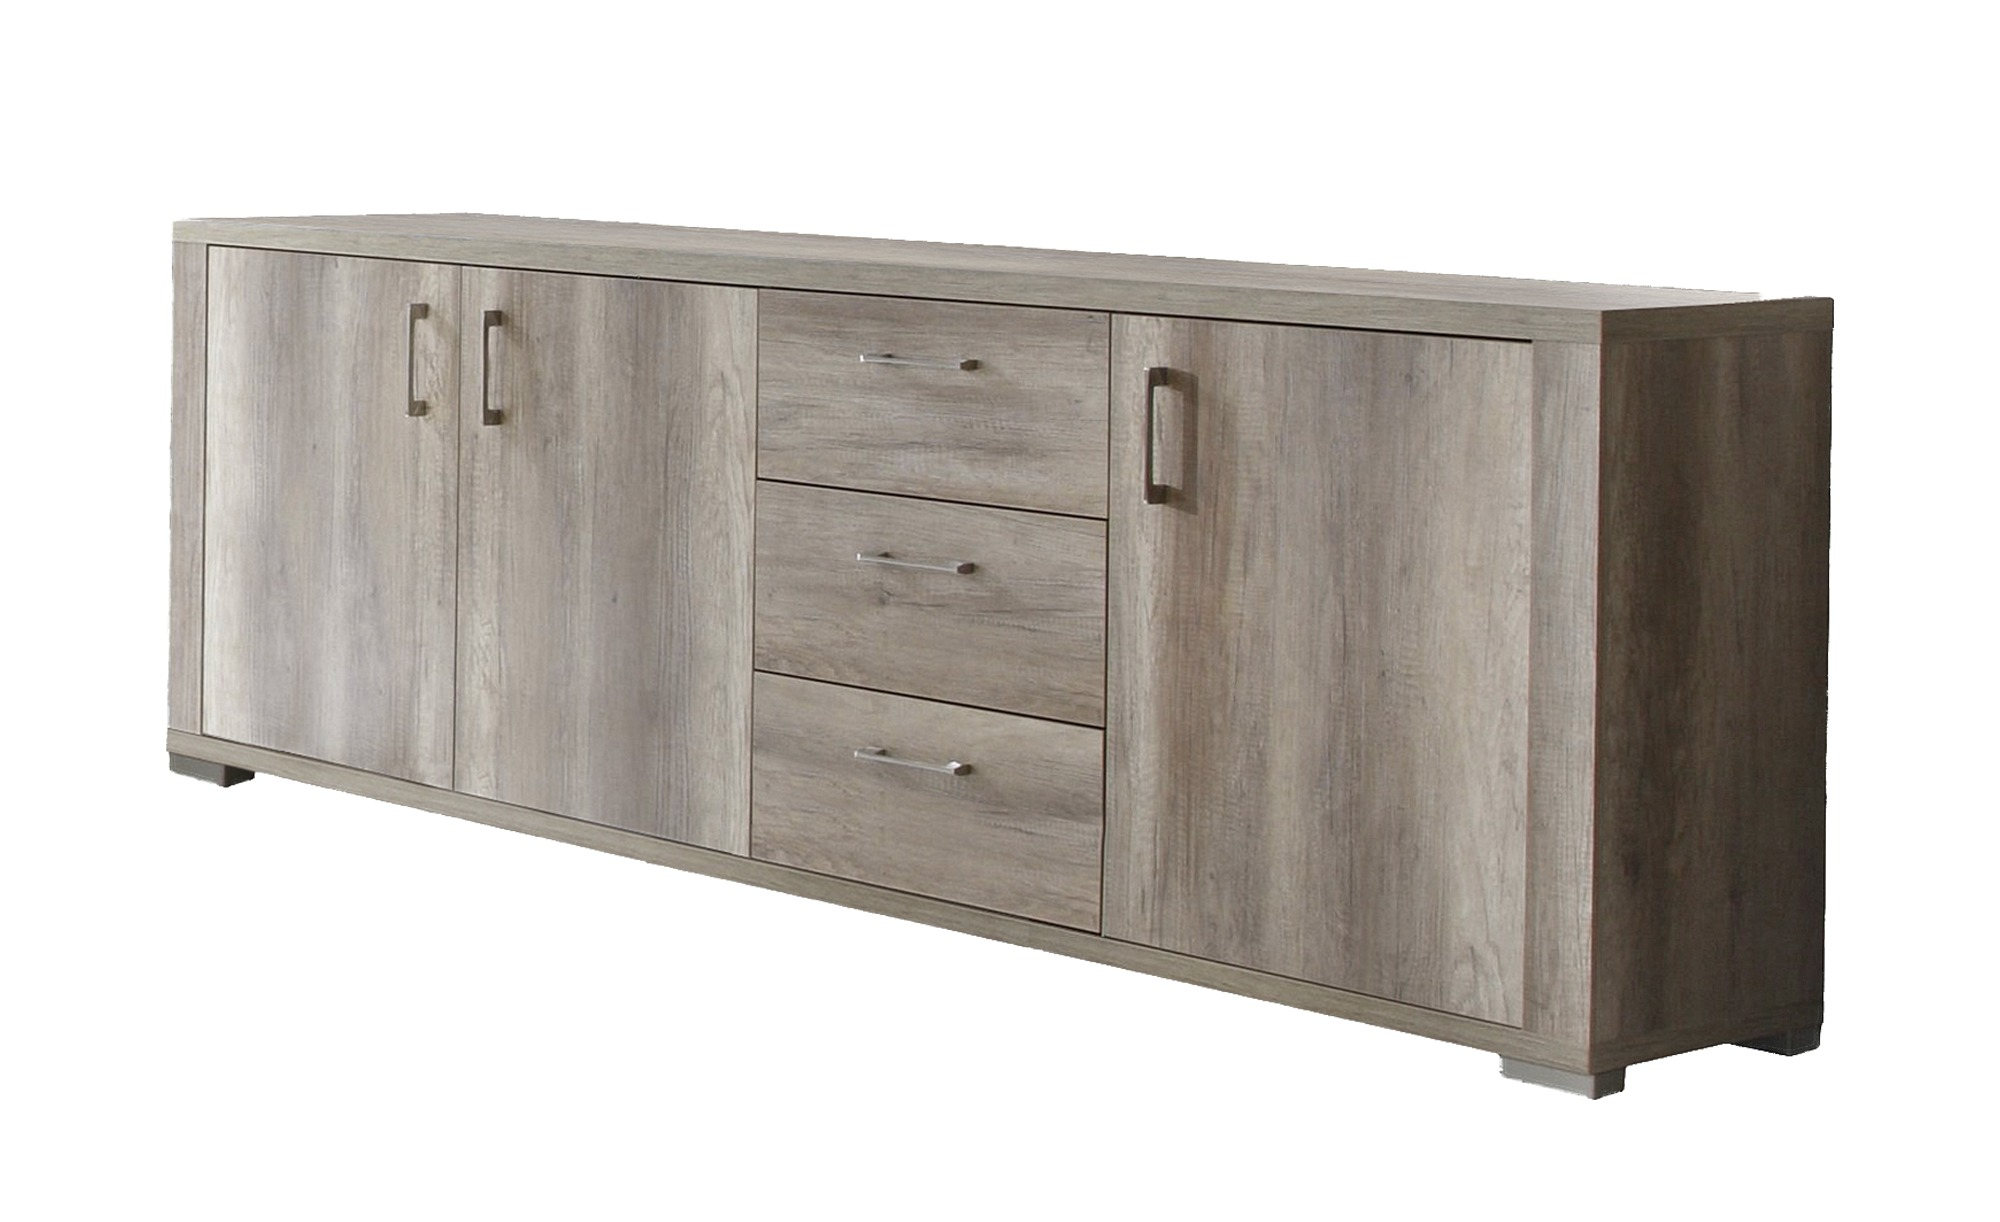 sideboard bosco breite 250 cm h he 87 cm holzfarben online kaufen bei woonio. Black Bedroom Furniture Sets. Home Design Ideas